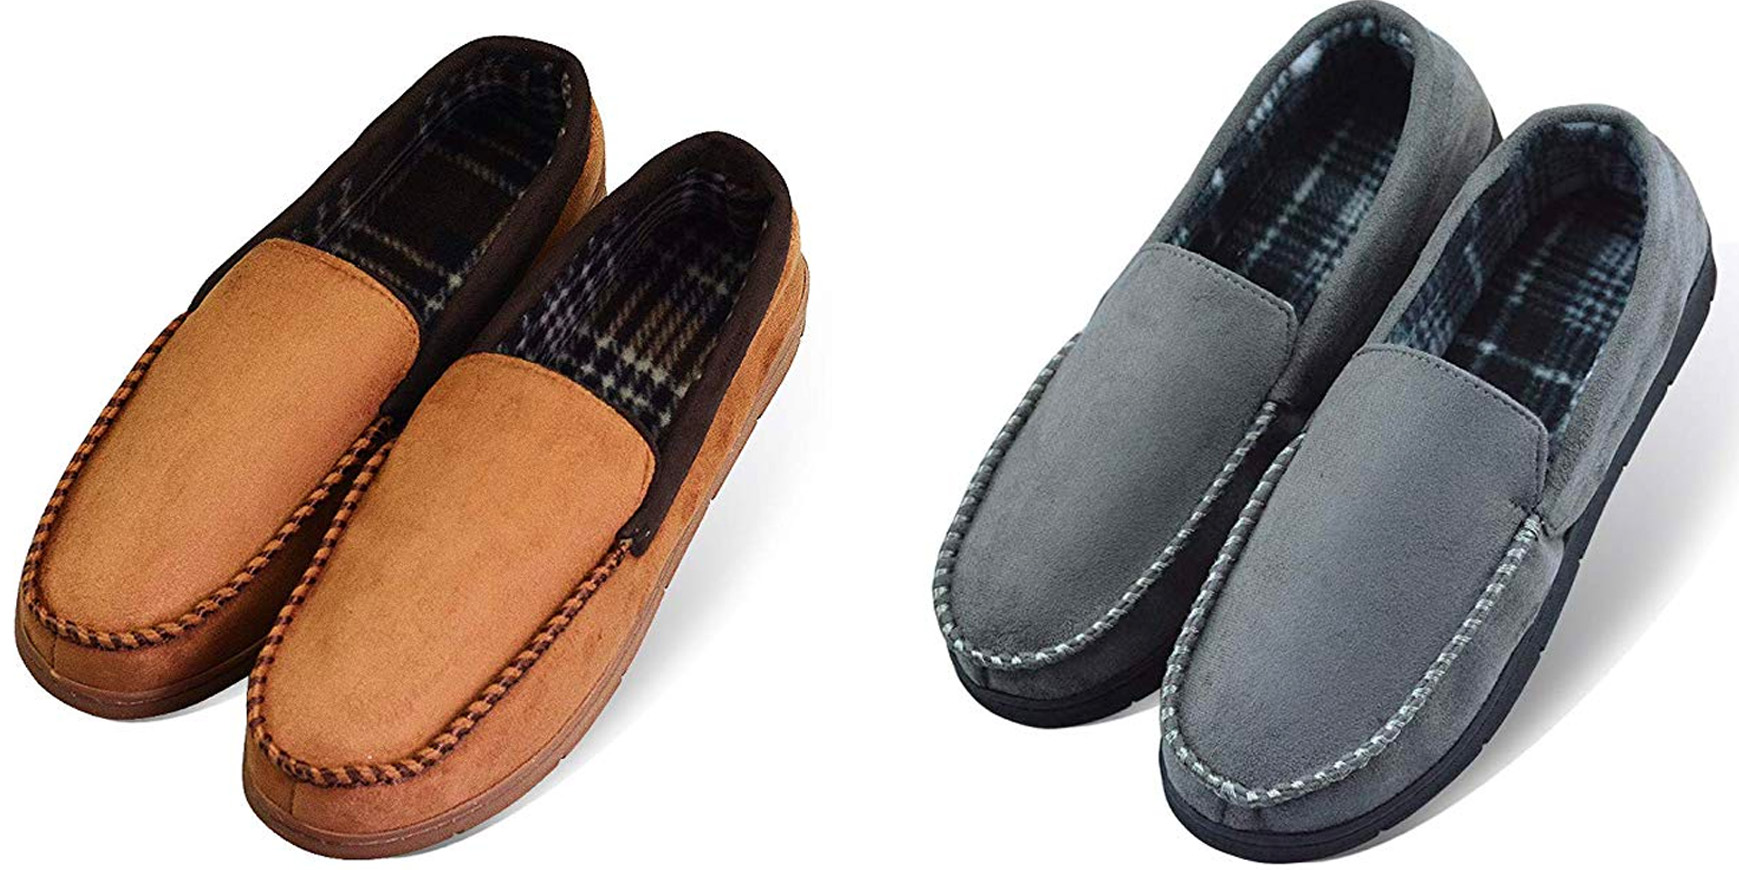 These men's moccasin-style slippers in several colors are $8, just in time for cool weather